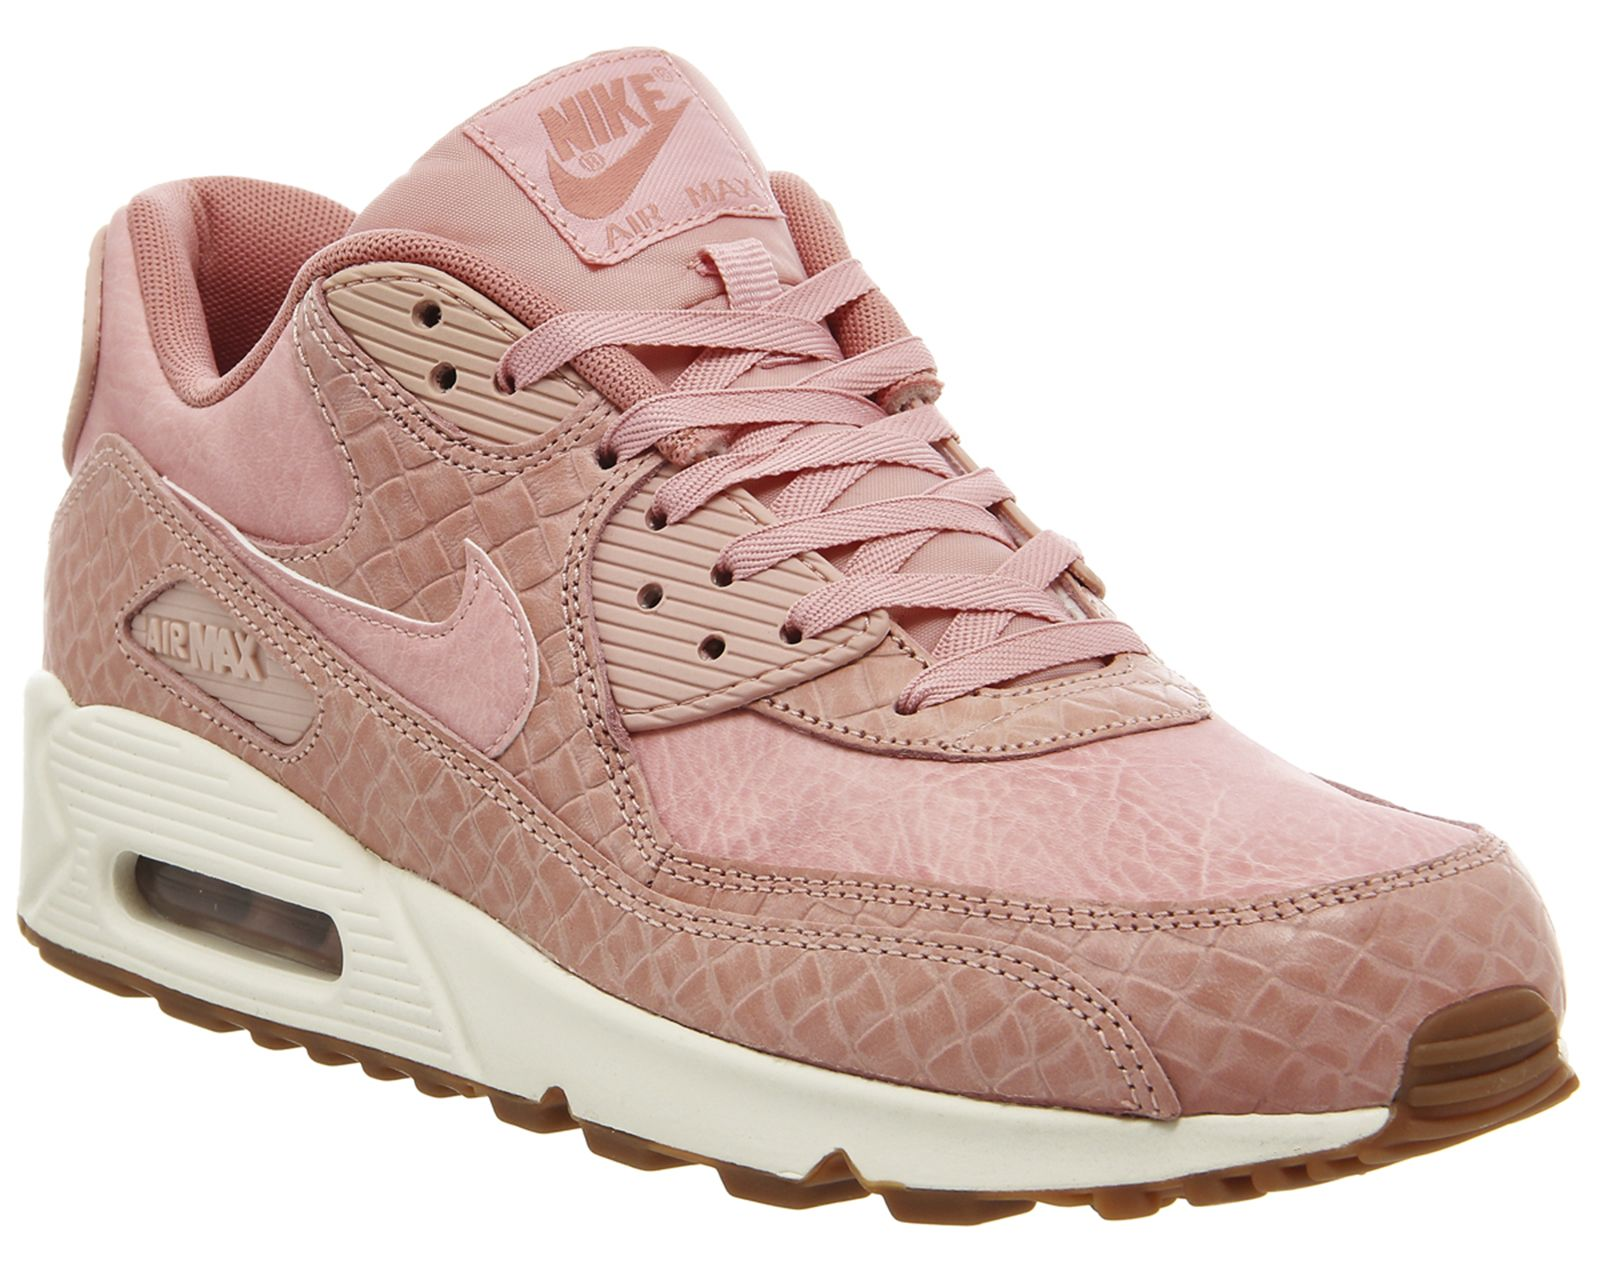 pretty nice 194b0 be9e1 Nike Air Max 90 Pink Glaze Basket Weave Gum